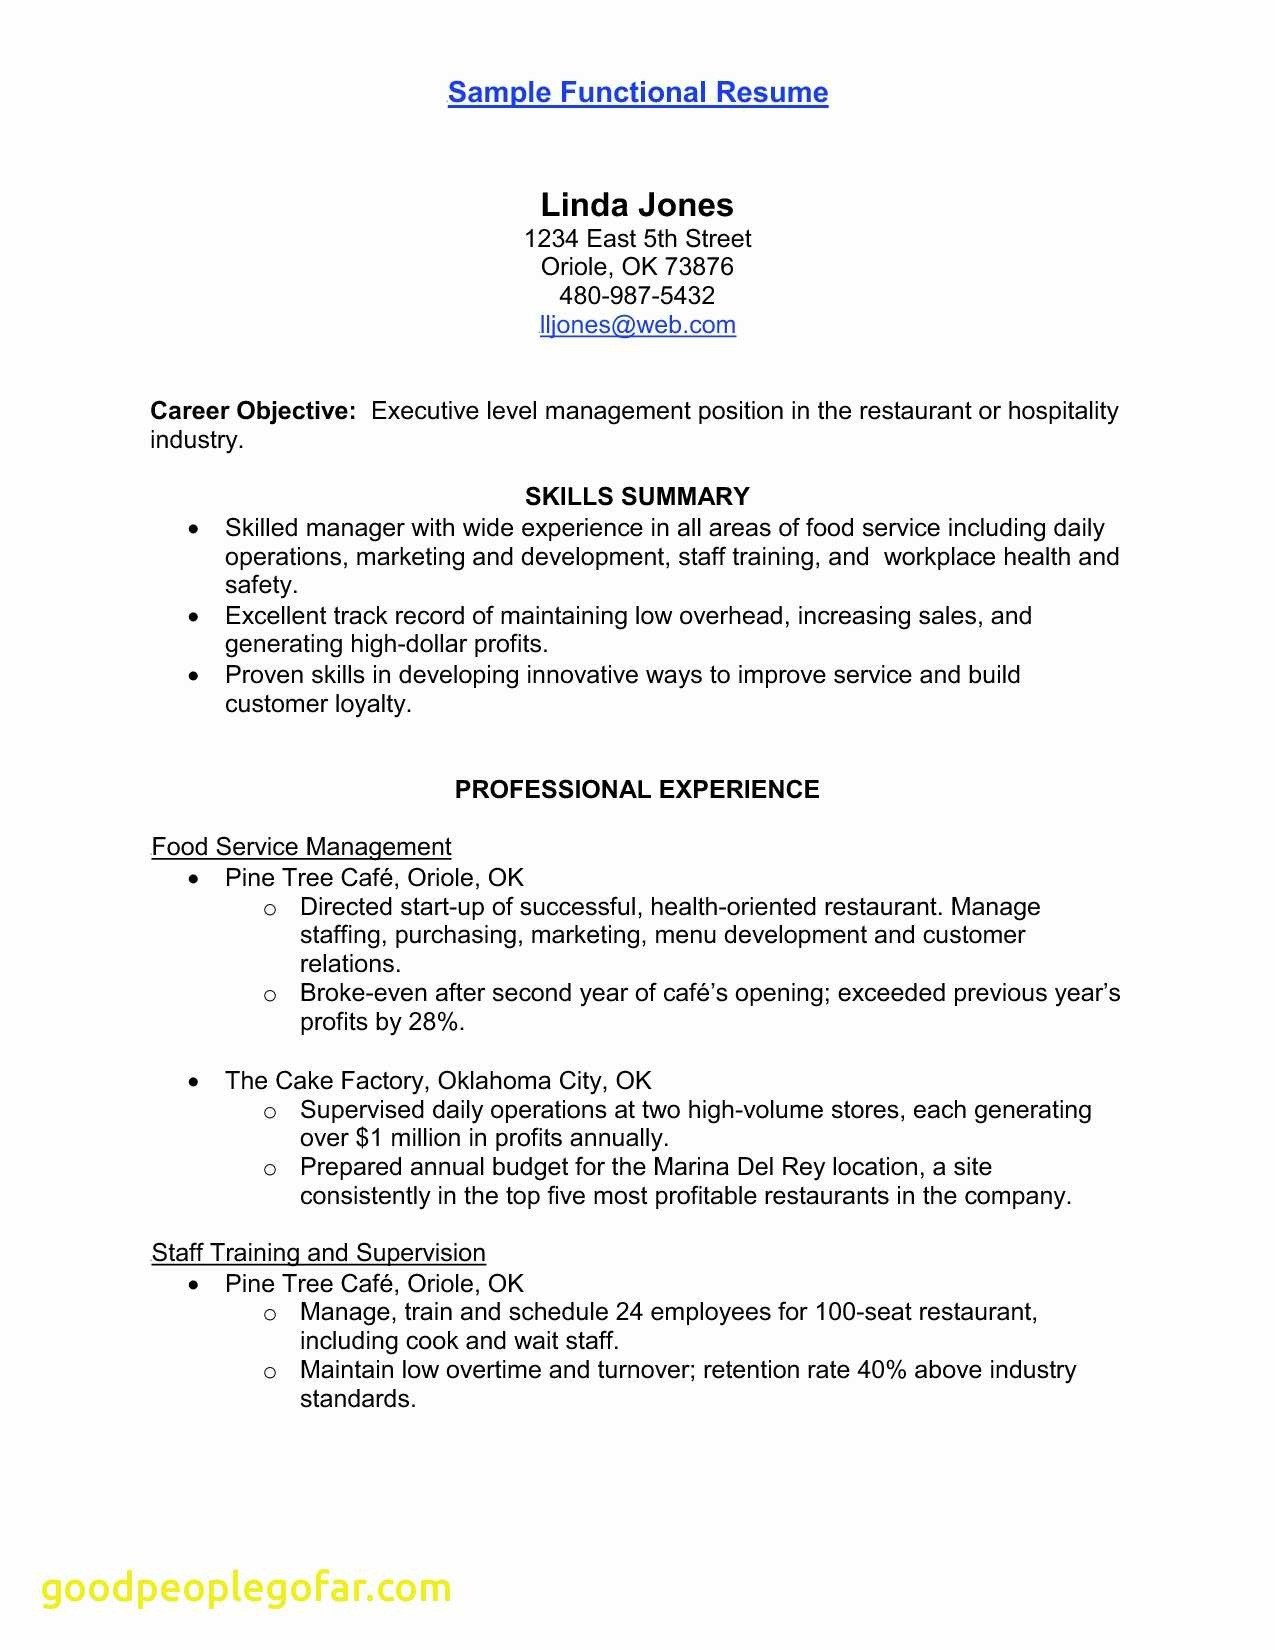 Electrician Resume Examples - Apprentice Electrician Resume Fresh Electrical Resume Elegant